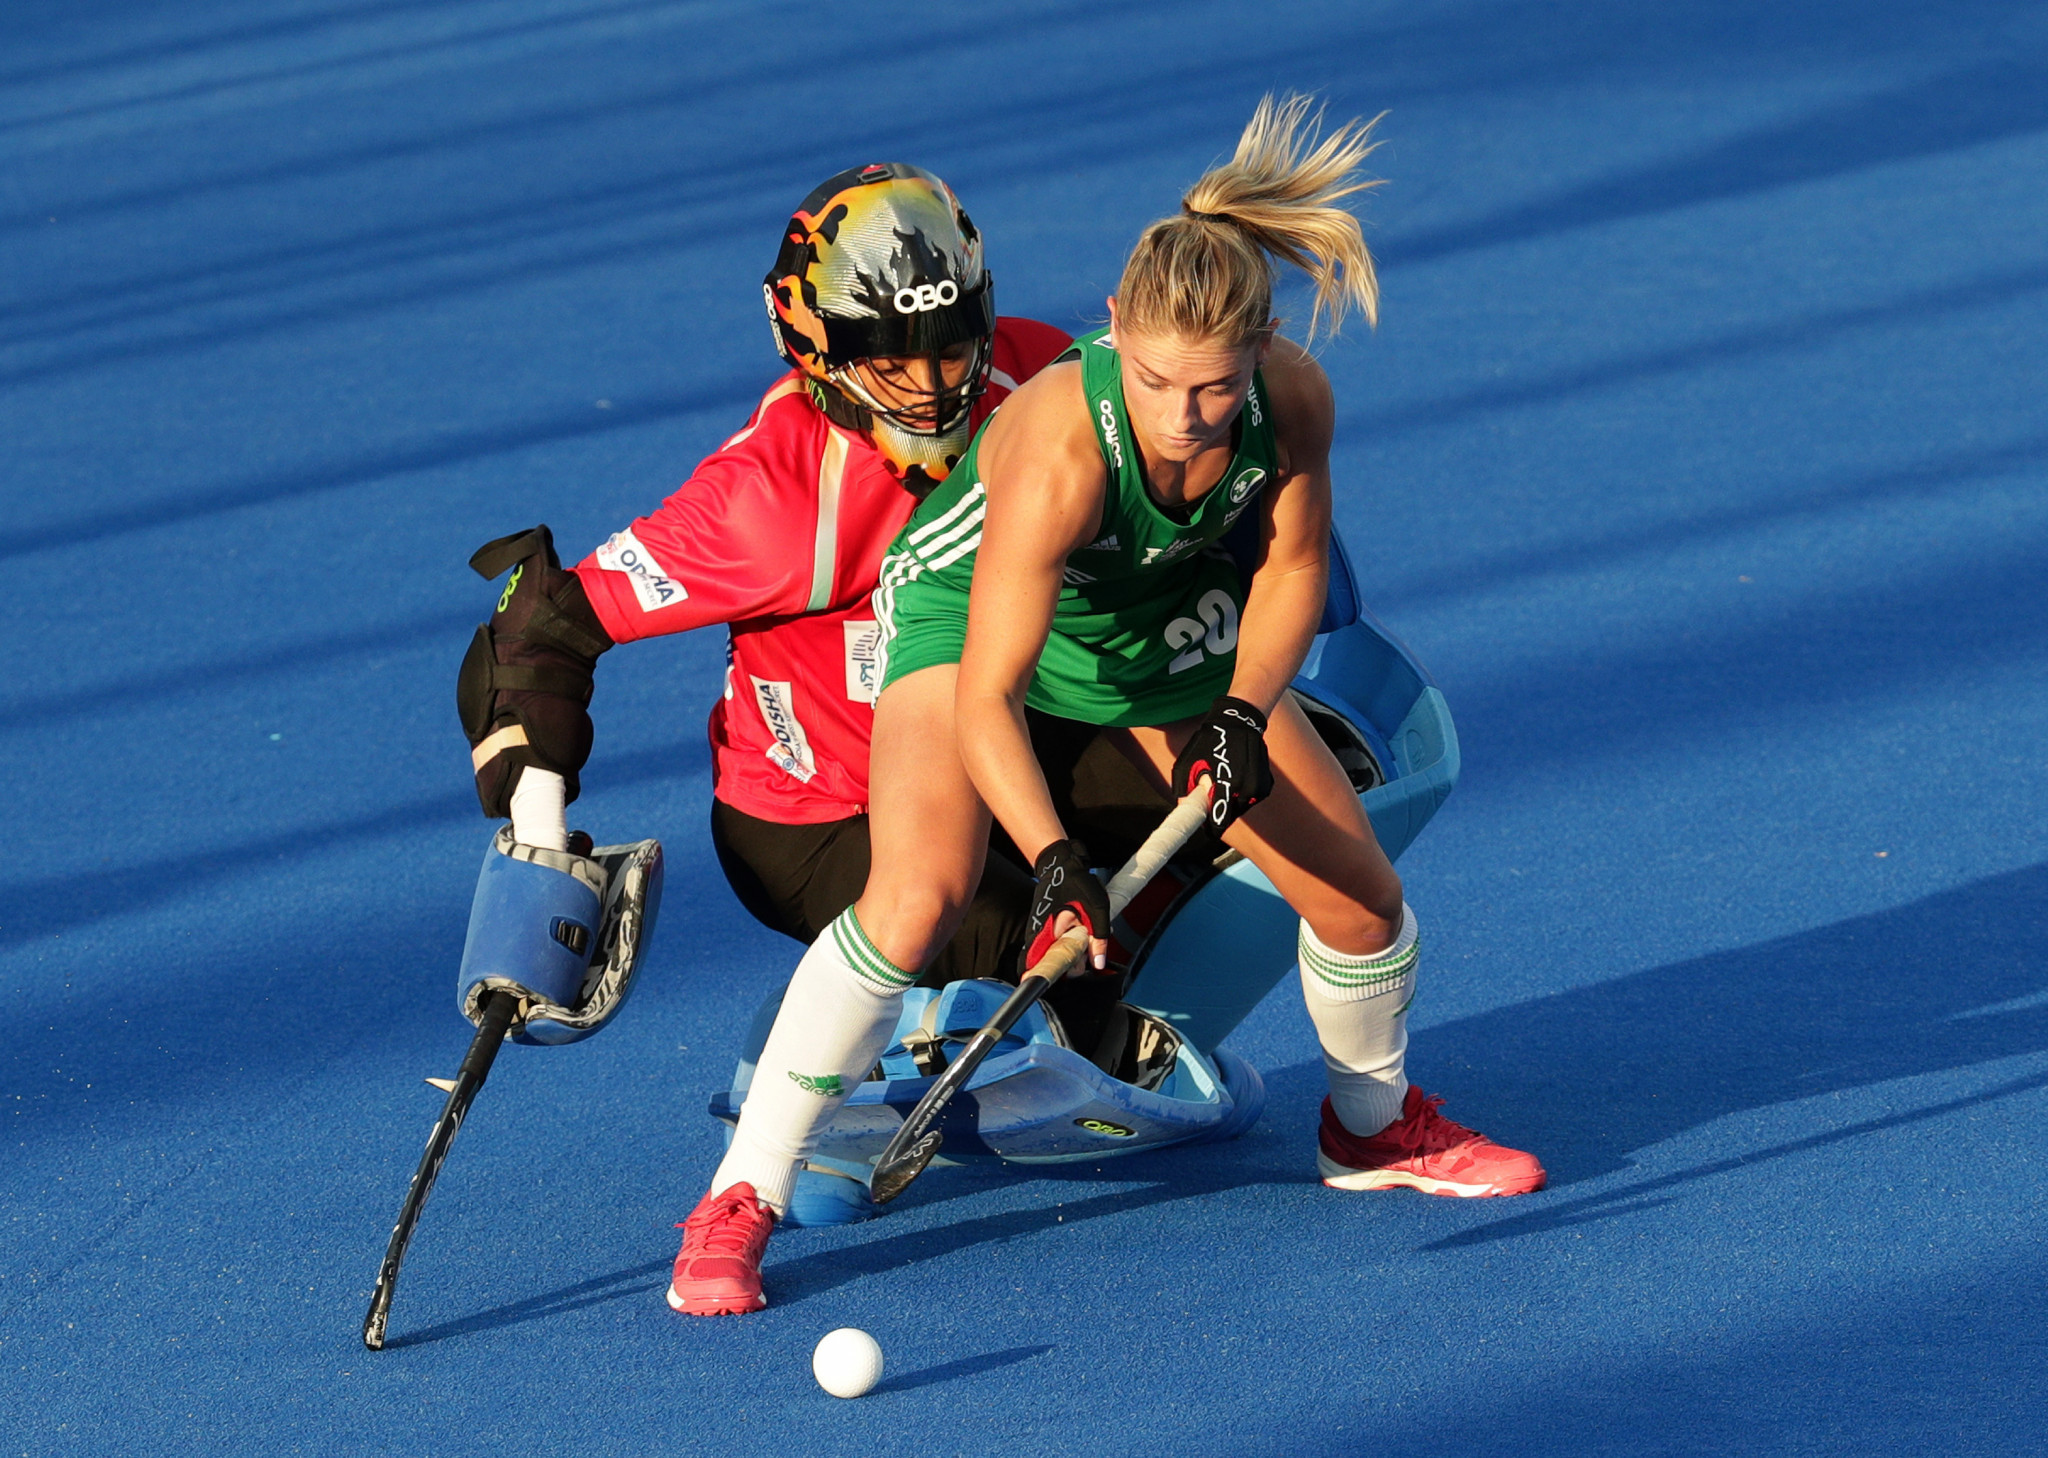 Ireland's hockey teams are enjoying unprecedented success at the moment and its women's team reached the final of the FIH World Cup in London last year ©Getty Images